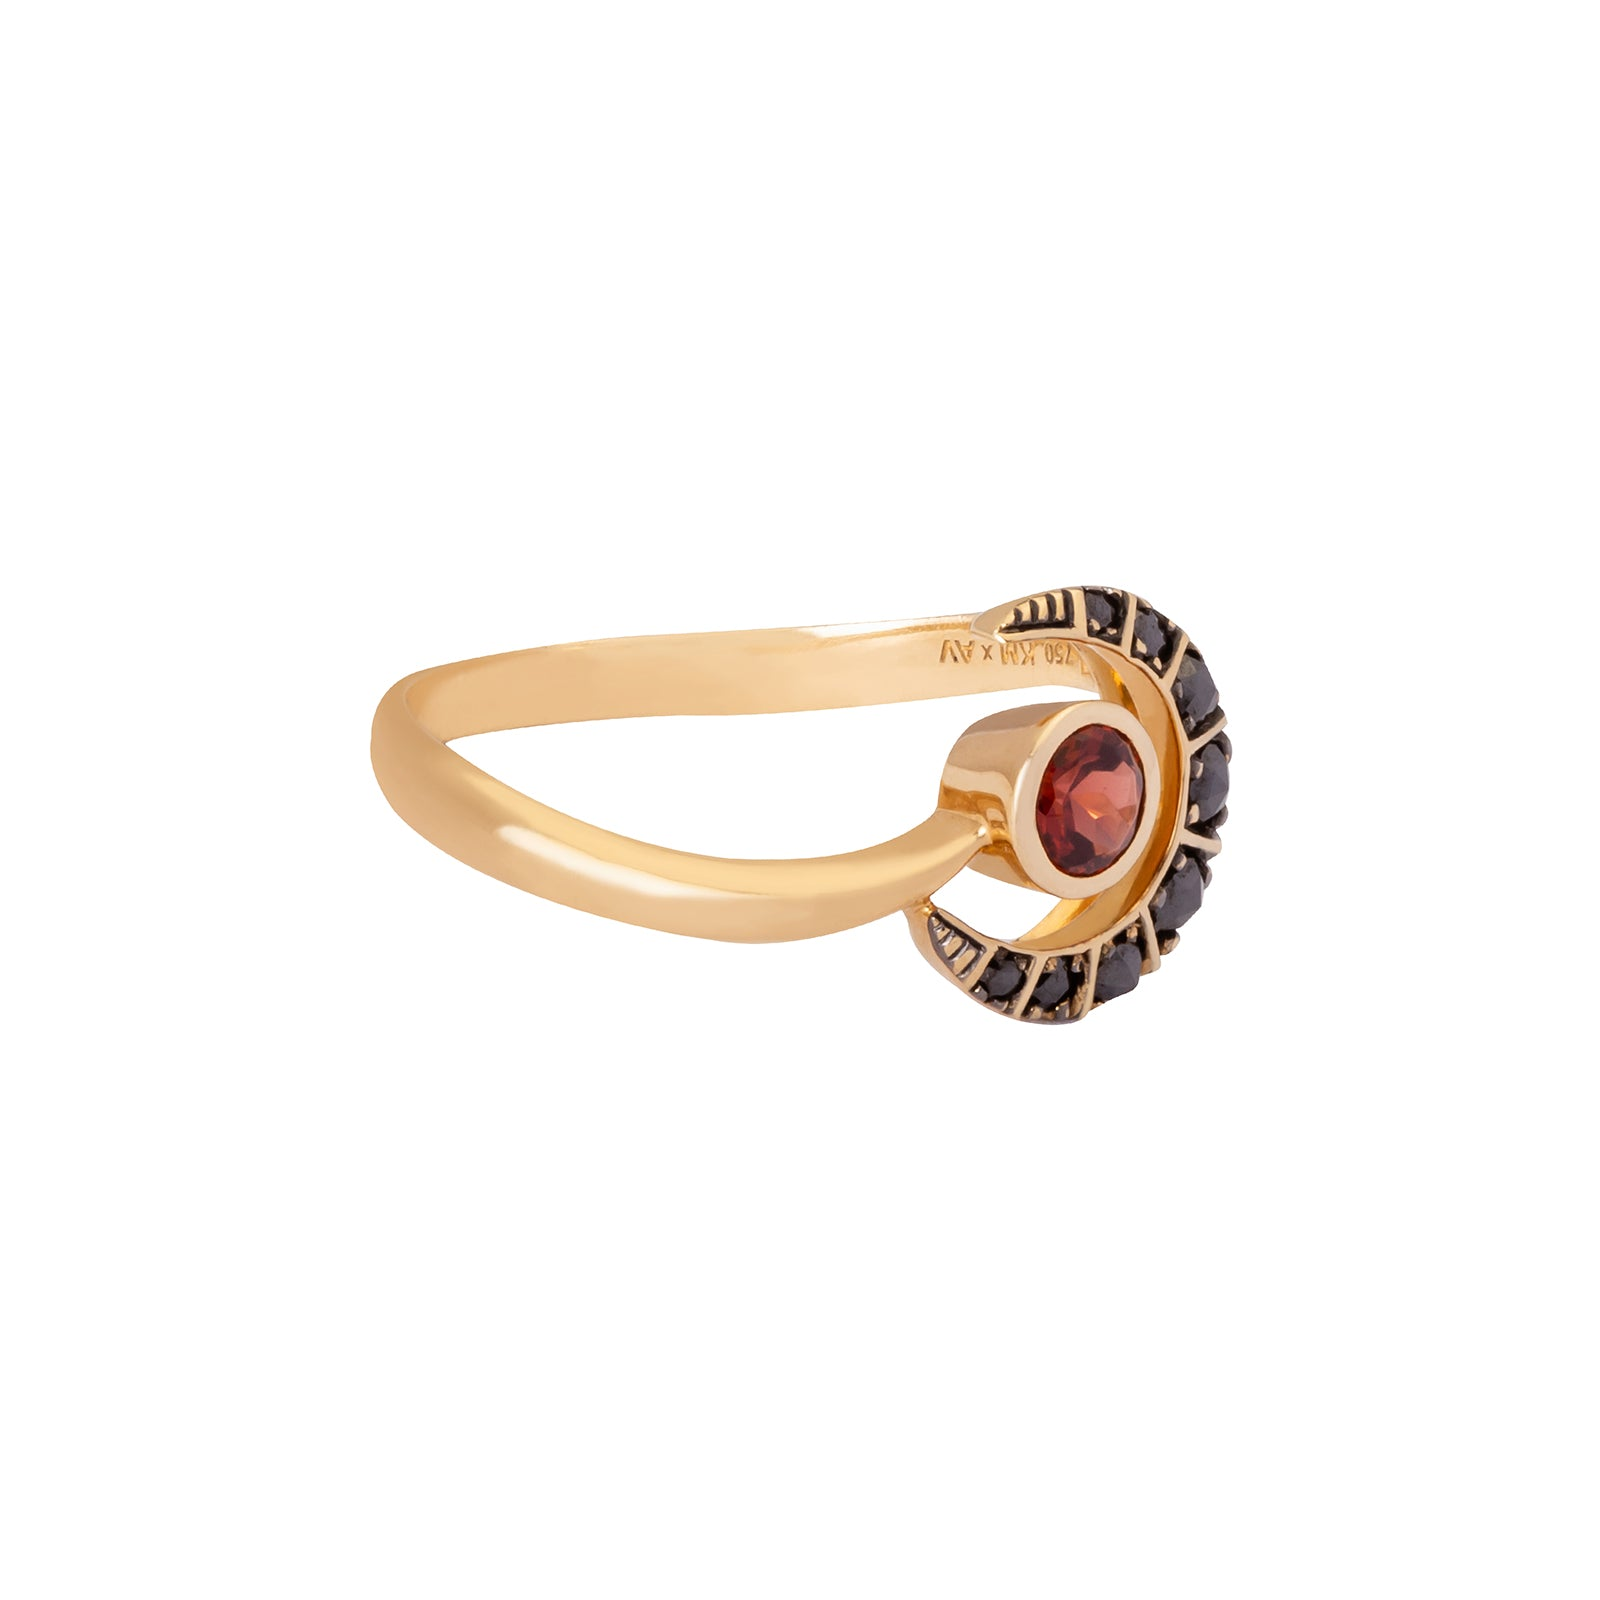 Ara Vartanian Crescent Ring - Garnet - Rings - Broken English Jewelry